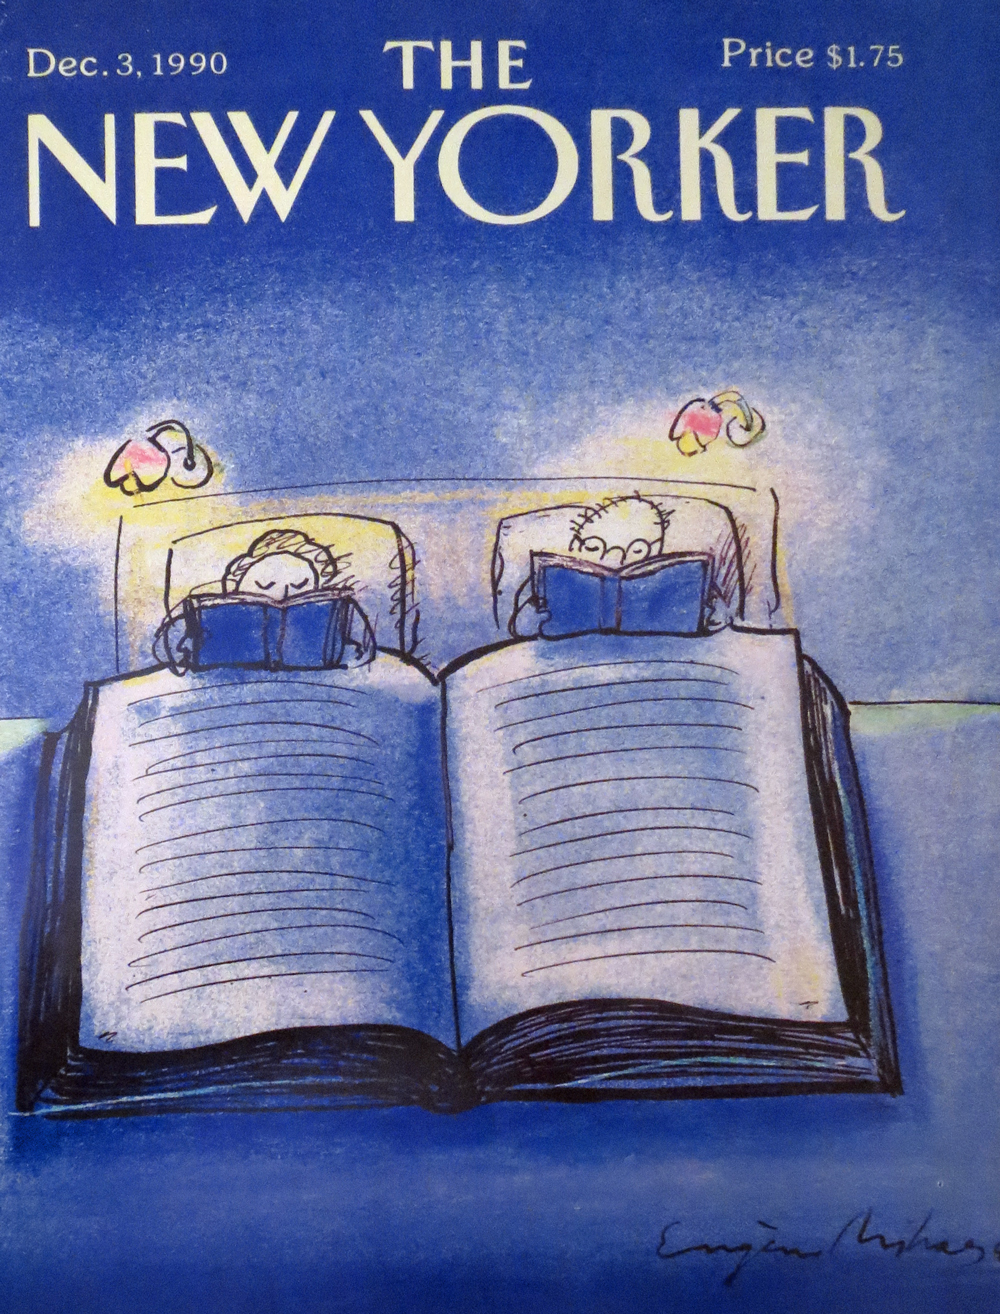 Woman and man reading in bed New Yorker 1990